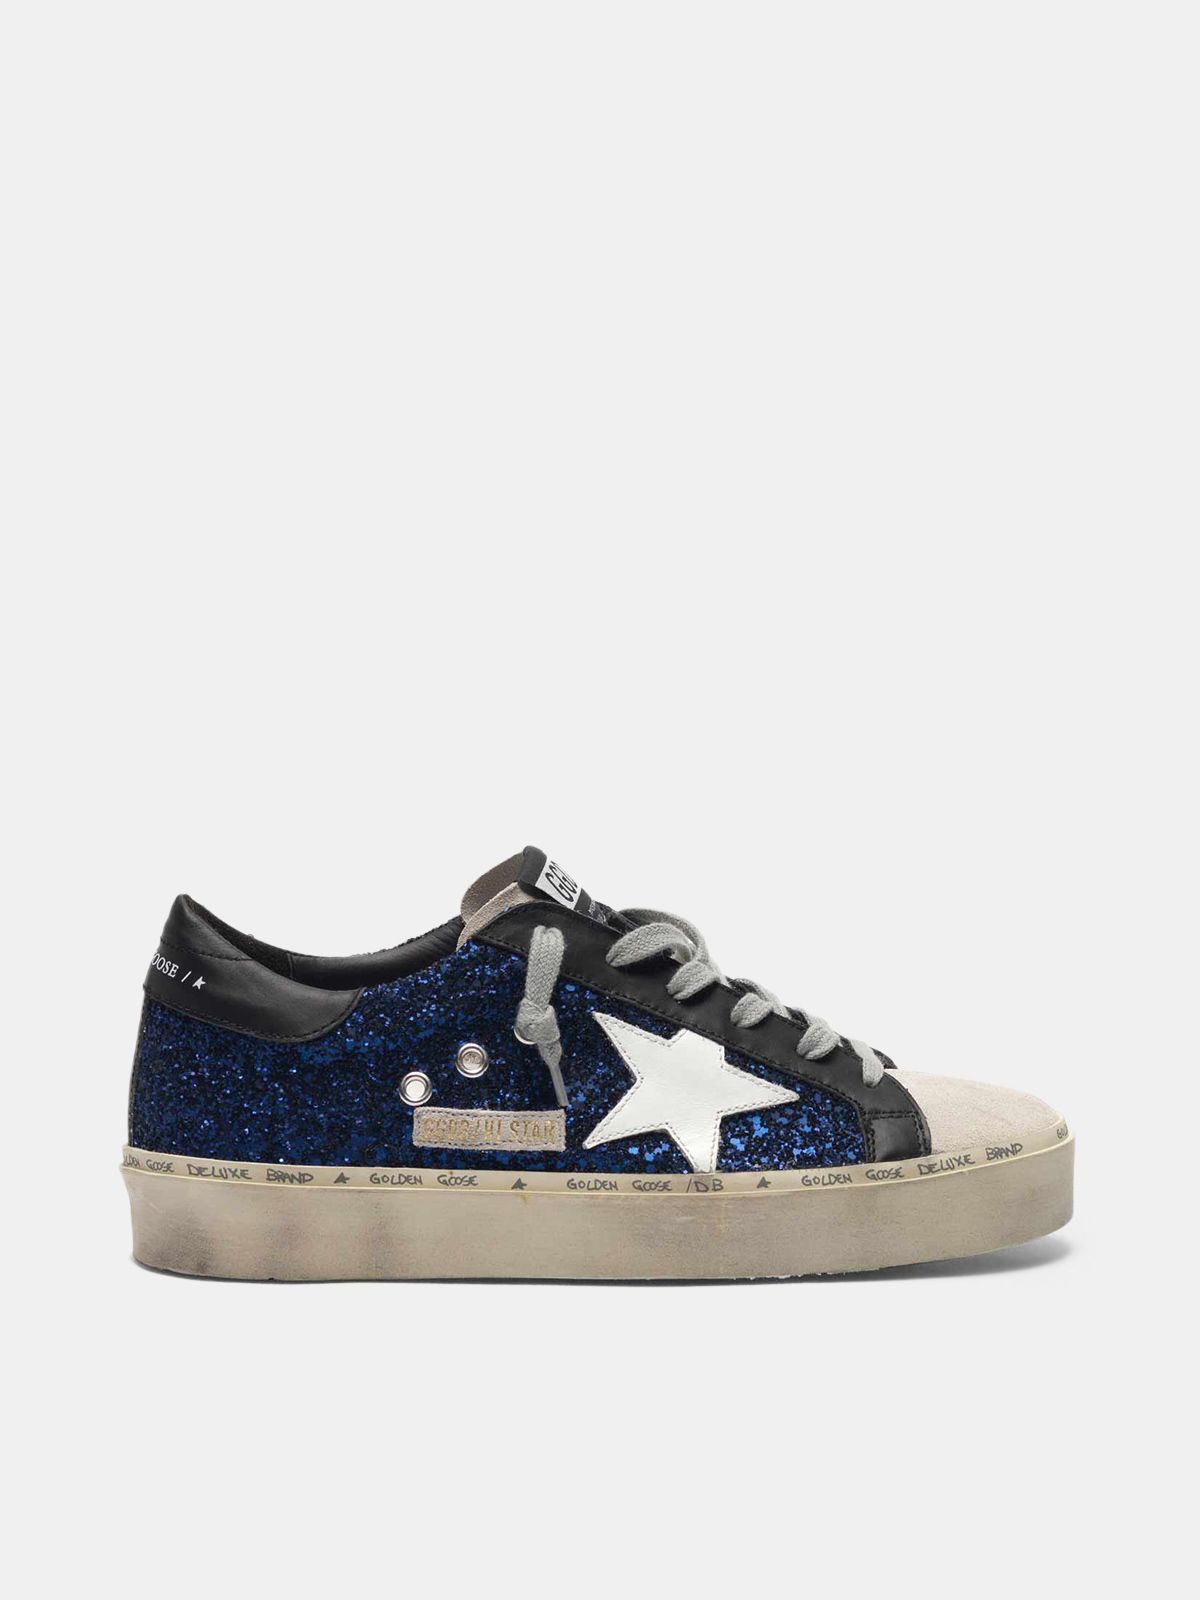 Golden Goose - Hi Star sneakers in suede with blue glitter in